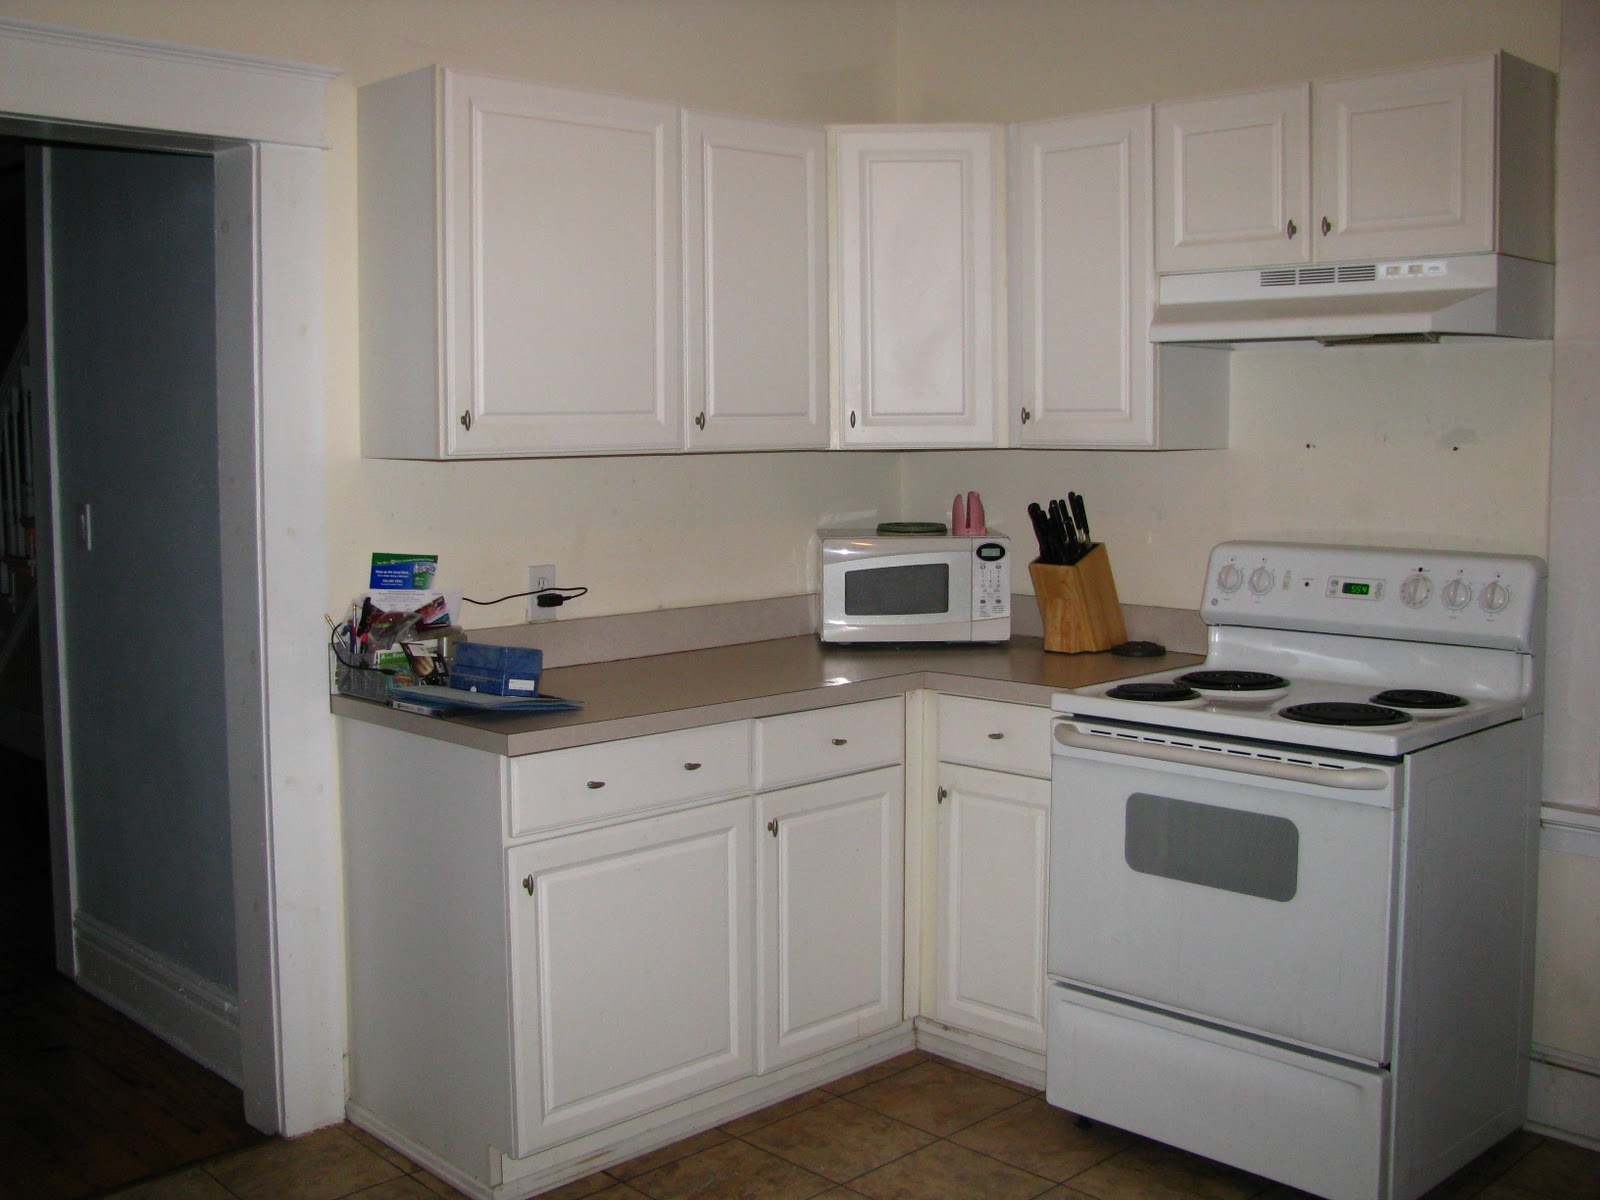 Remodelaholic *: Kitchen Remodel on the Cheap!